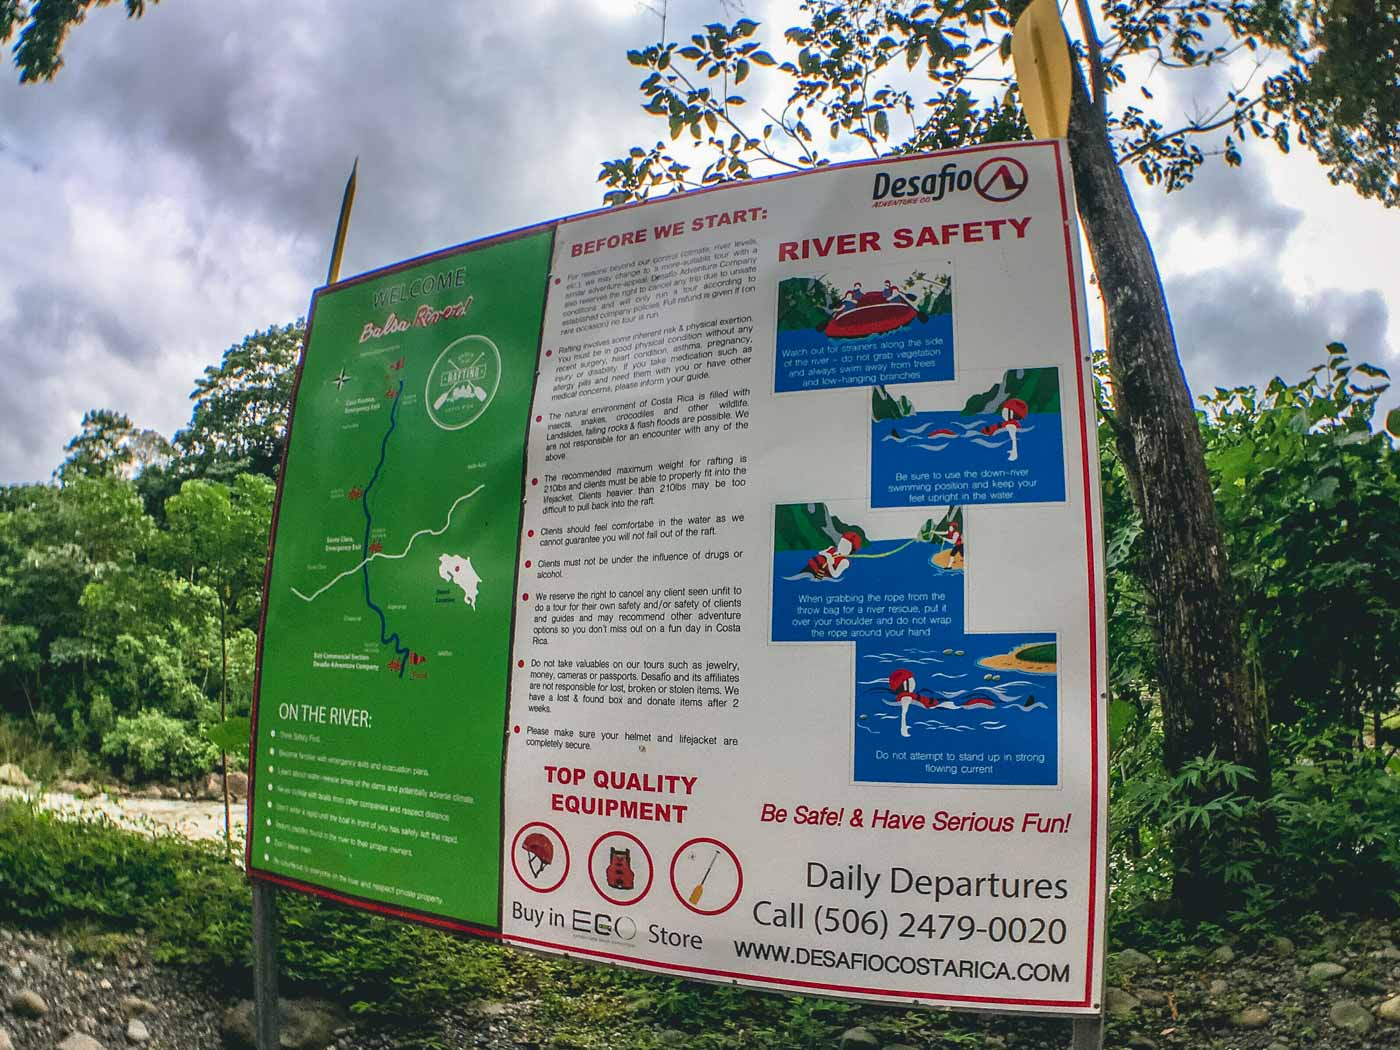 Arenal Costa Rica: Arenal Volcano River Safety